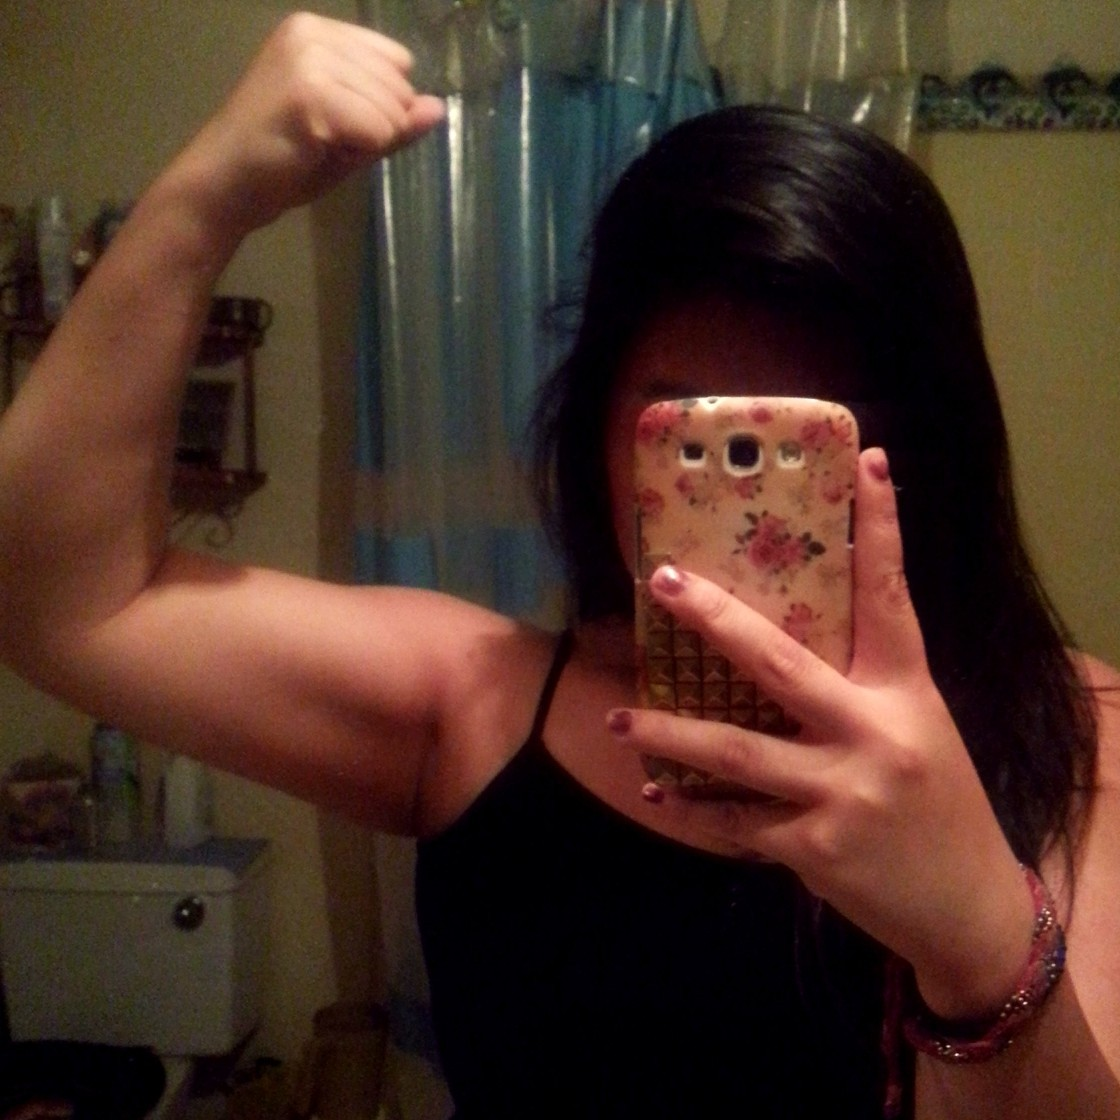 shortneyx3fitness:  Progress (Arms):  3 Sets of 14 Each, Two Cycles - 60 lb Arm Curls - 40 lb Lat Raises  - 50 lb Tricep Curls  - 75 lb Seated Rows My arm routine at the MINIMUM. **These numbers have changed just recently (went one weight plate up and added 2 reps last week). I hope you guys are continuing what you do and I'm so proud of those who message me and really keep up with the plan I give them. Good job! Keep it up sexy people (:   - Shortney